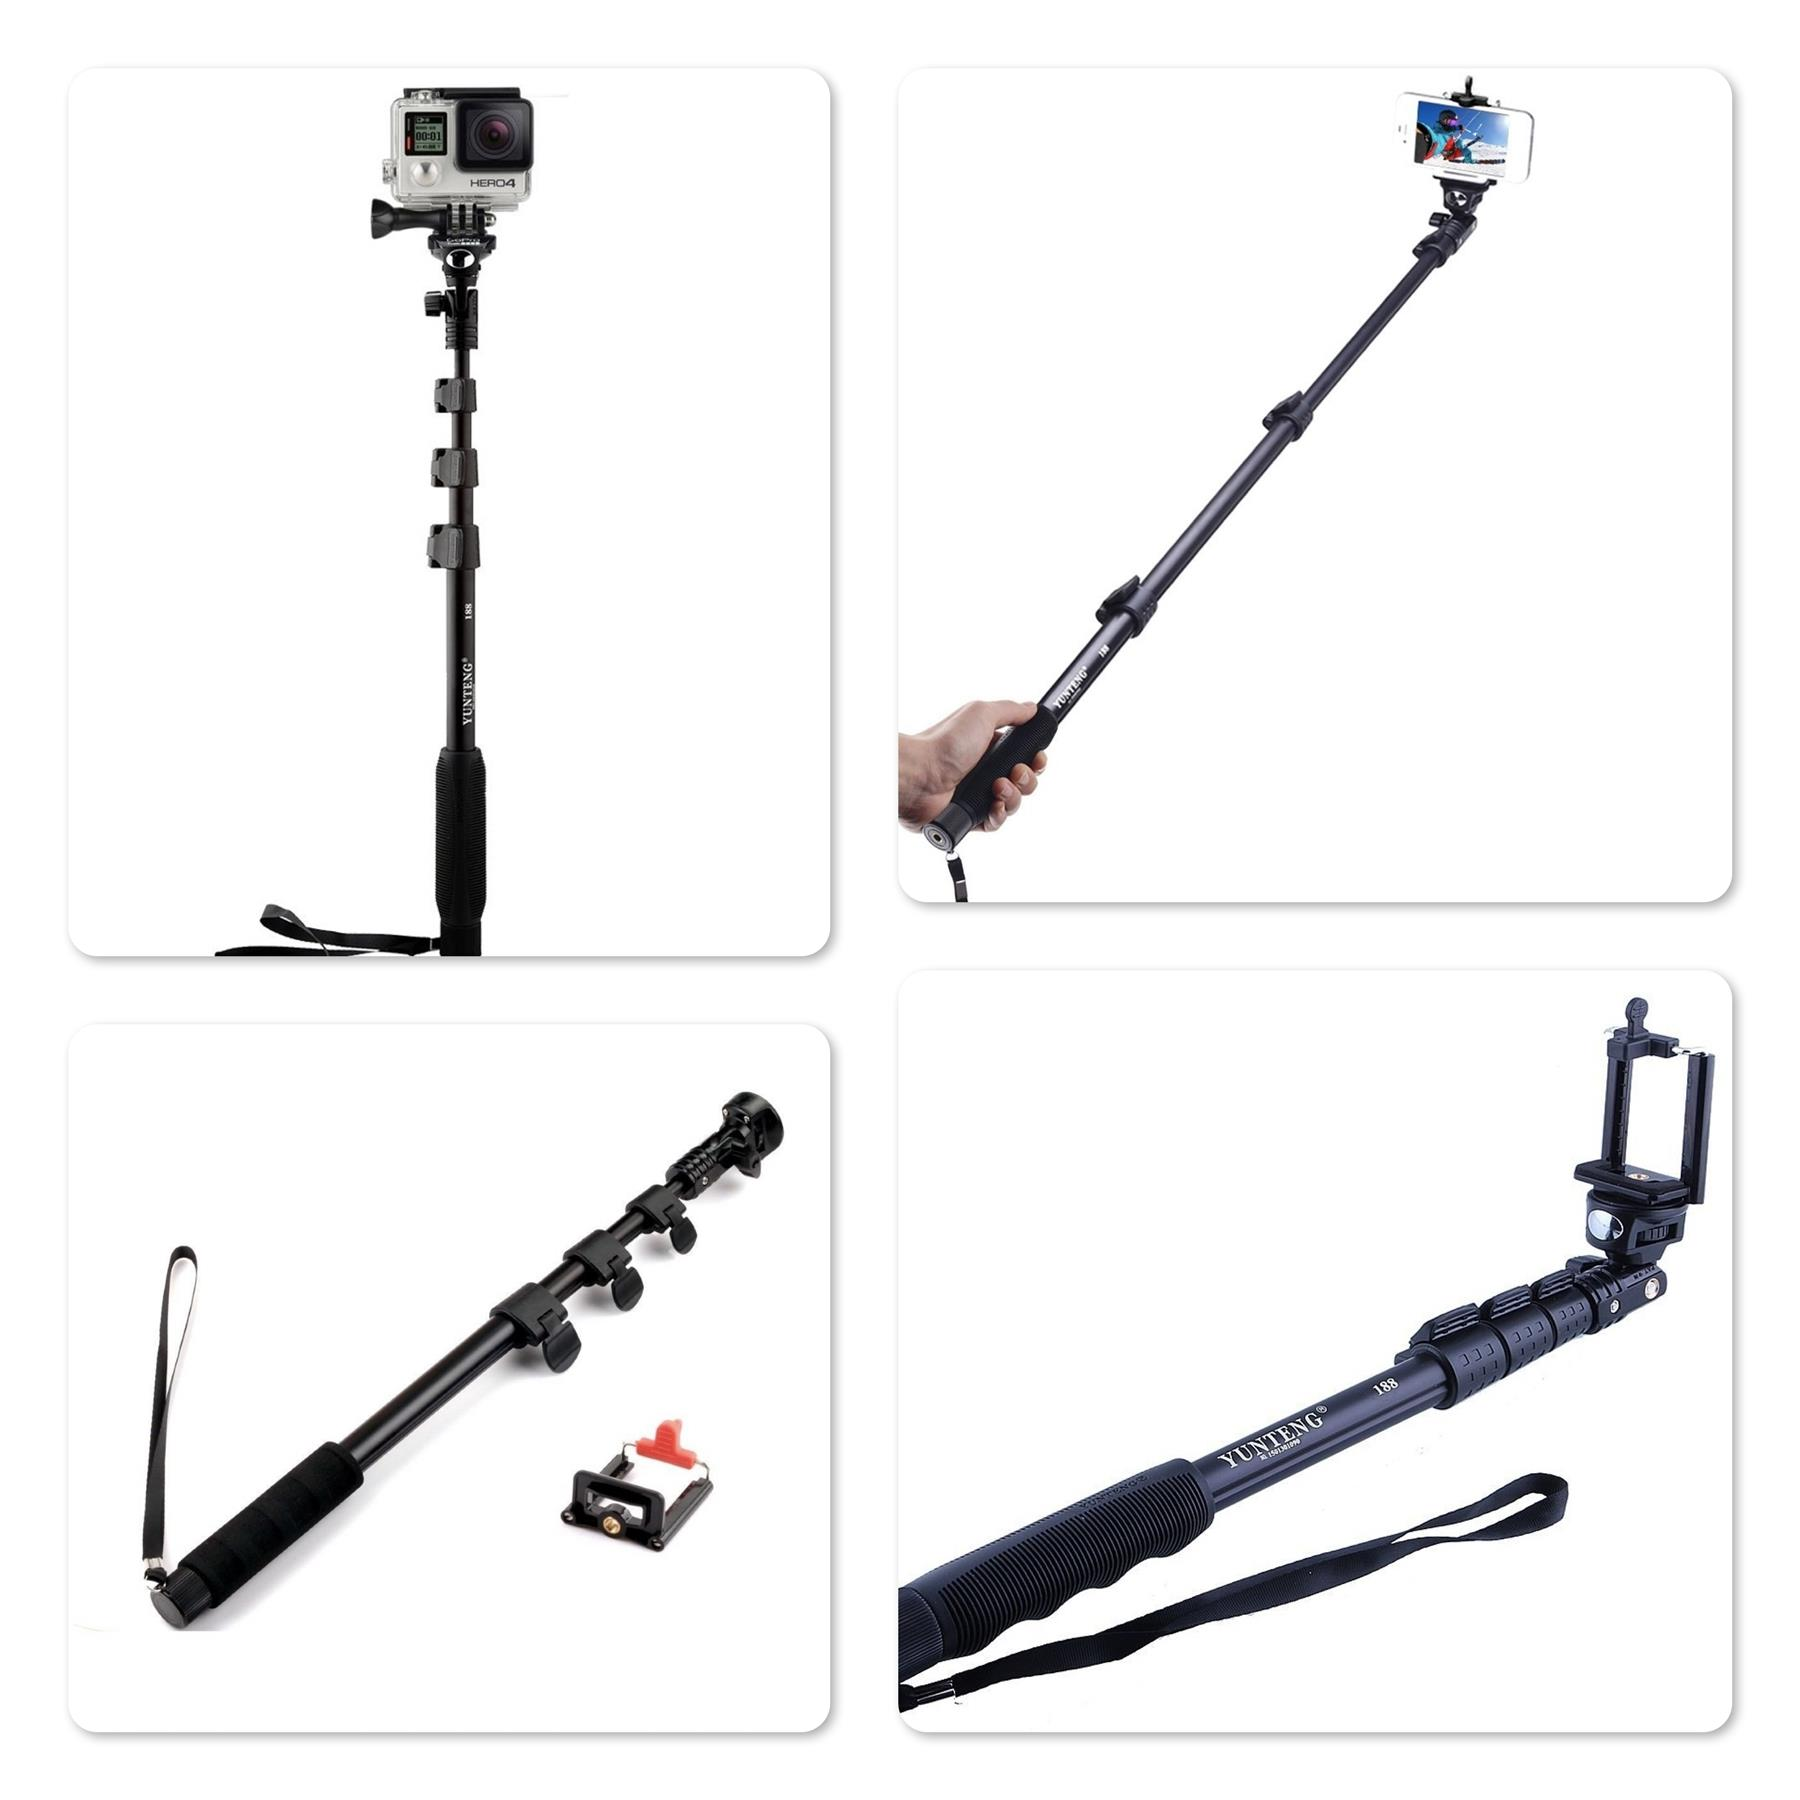 bdotcom yunteng yt 188 selfie stick end 4 7 2017 3 15 pm. Black Bedroom Furniture Sets. Home Design Ideas